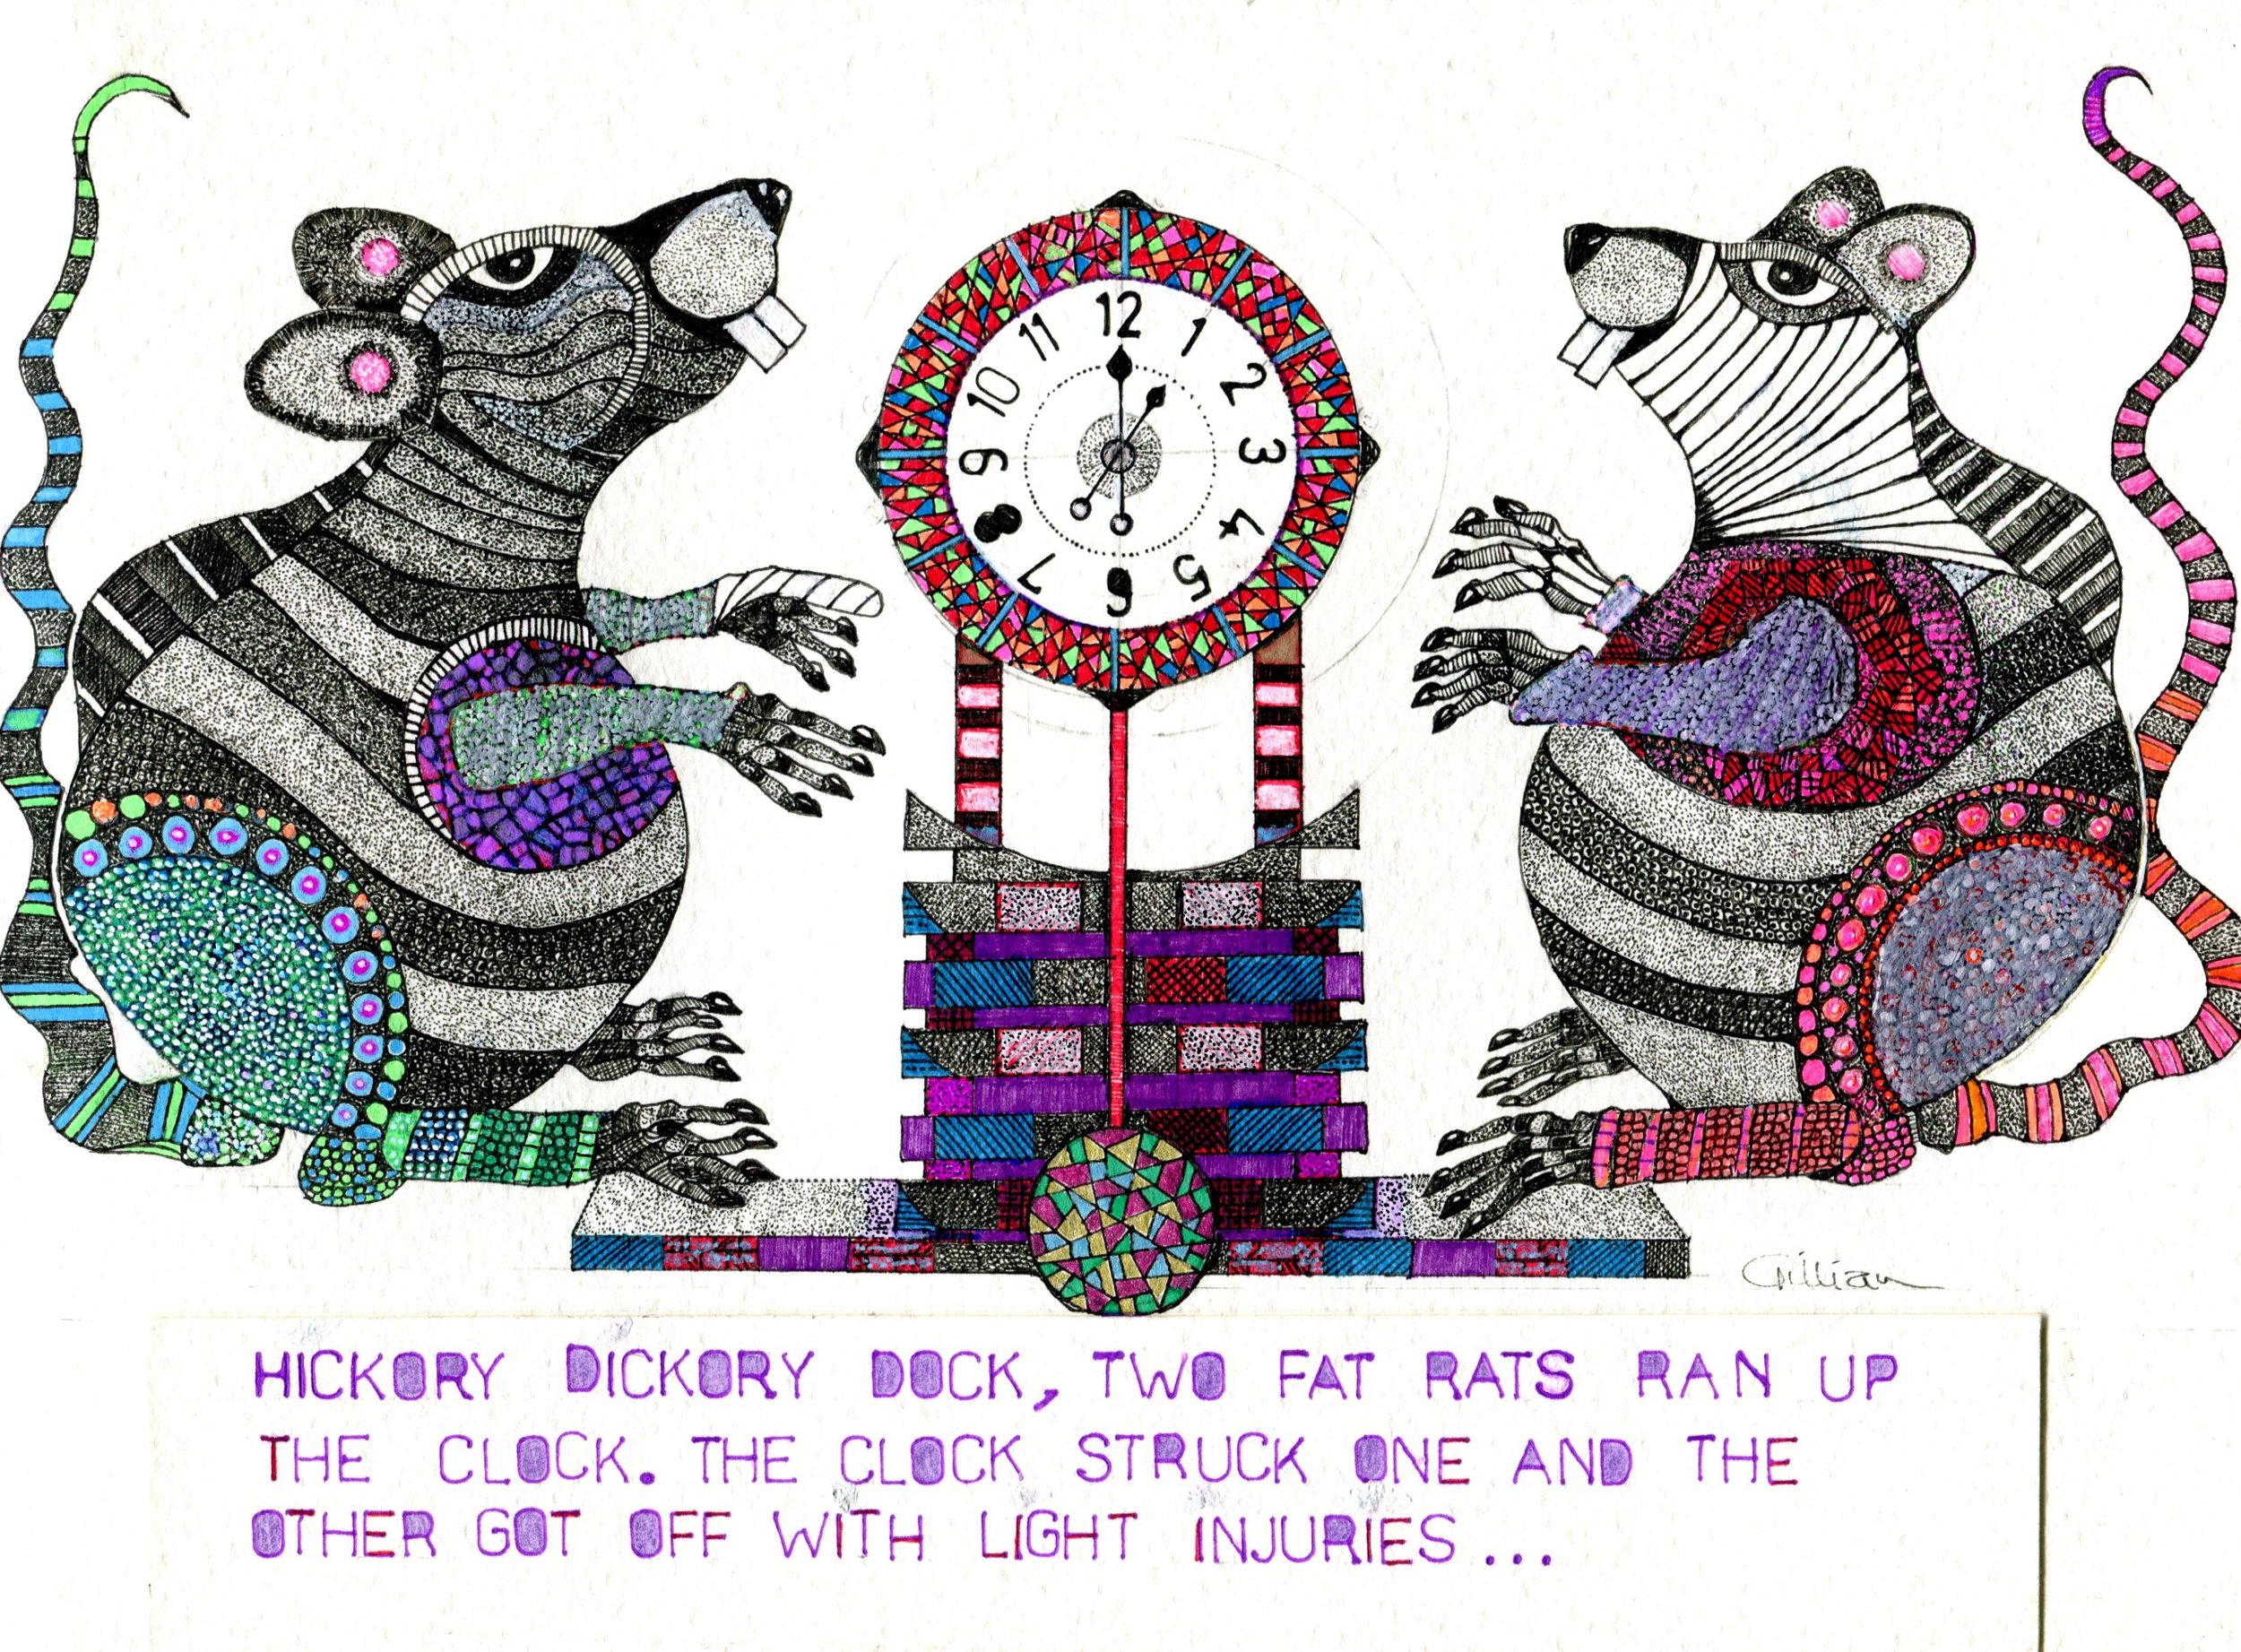 5B GILLIAN GERHARDT, HICKORY DICKORY DOCK, PEN & INK ON PAPER